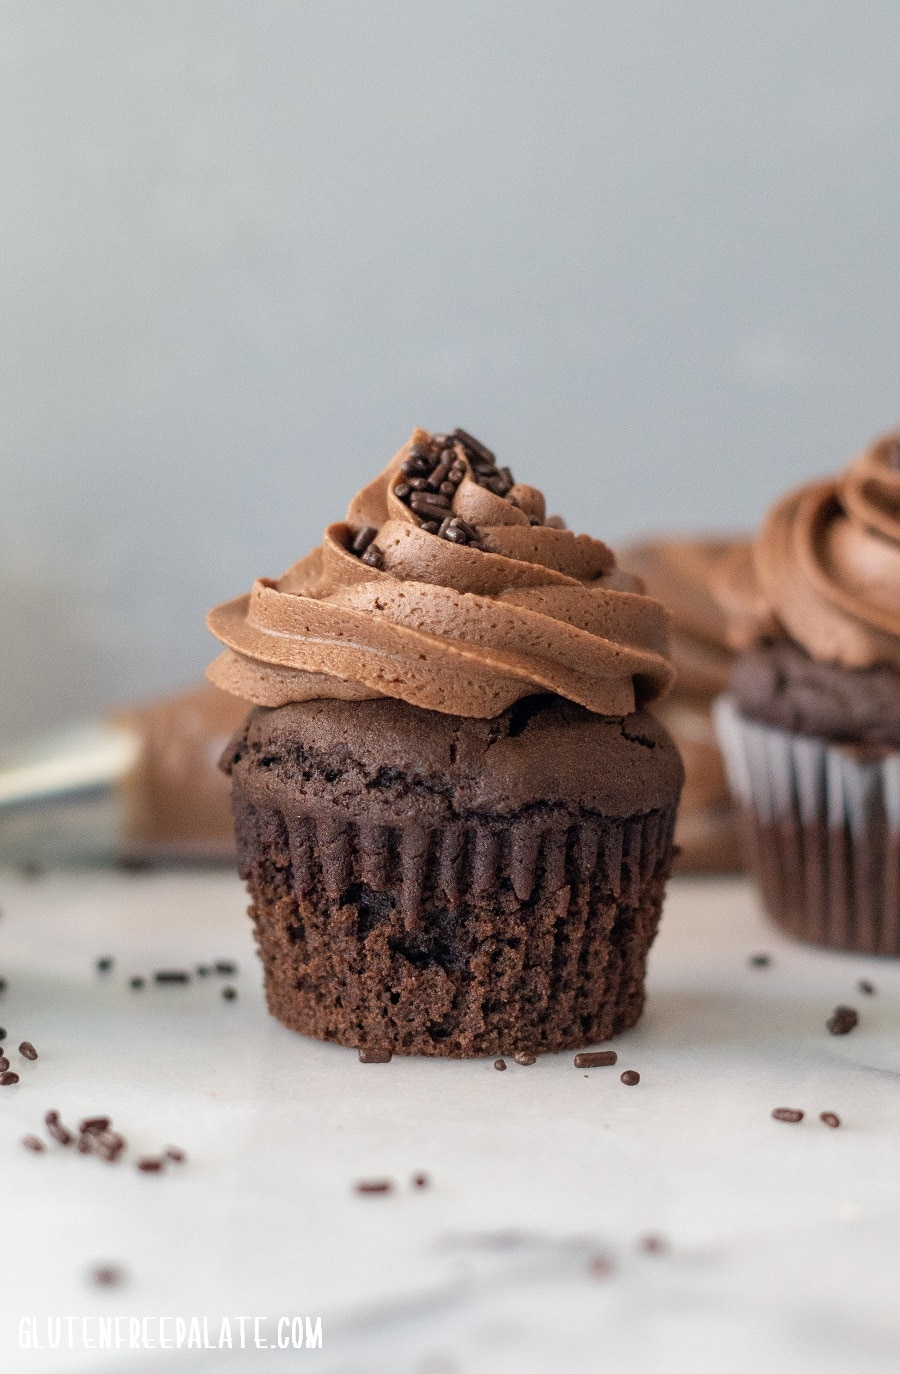 a side view of chocolate cupcakes topped with chocolate frosting